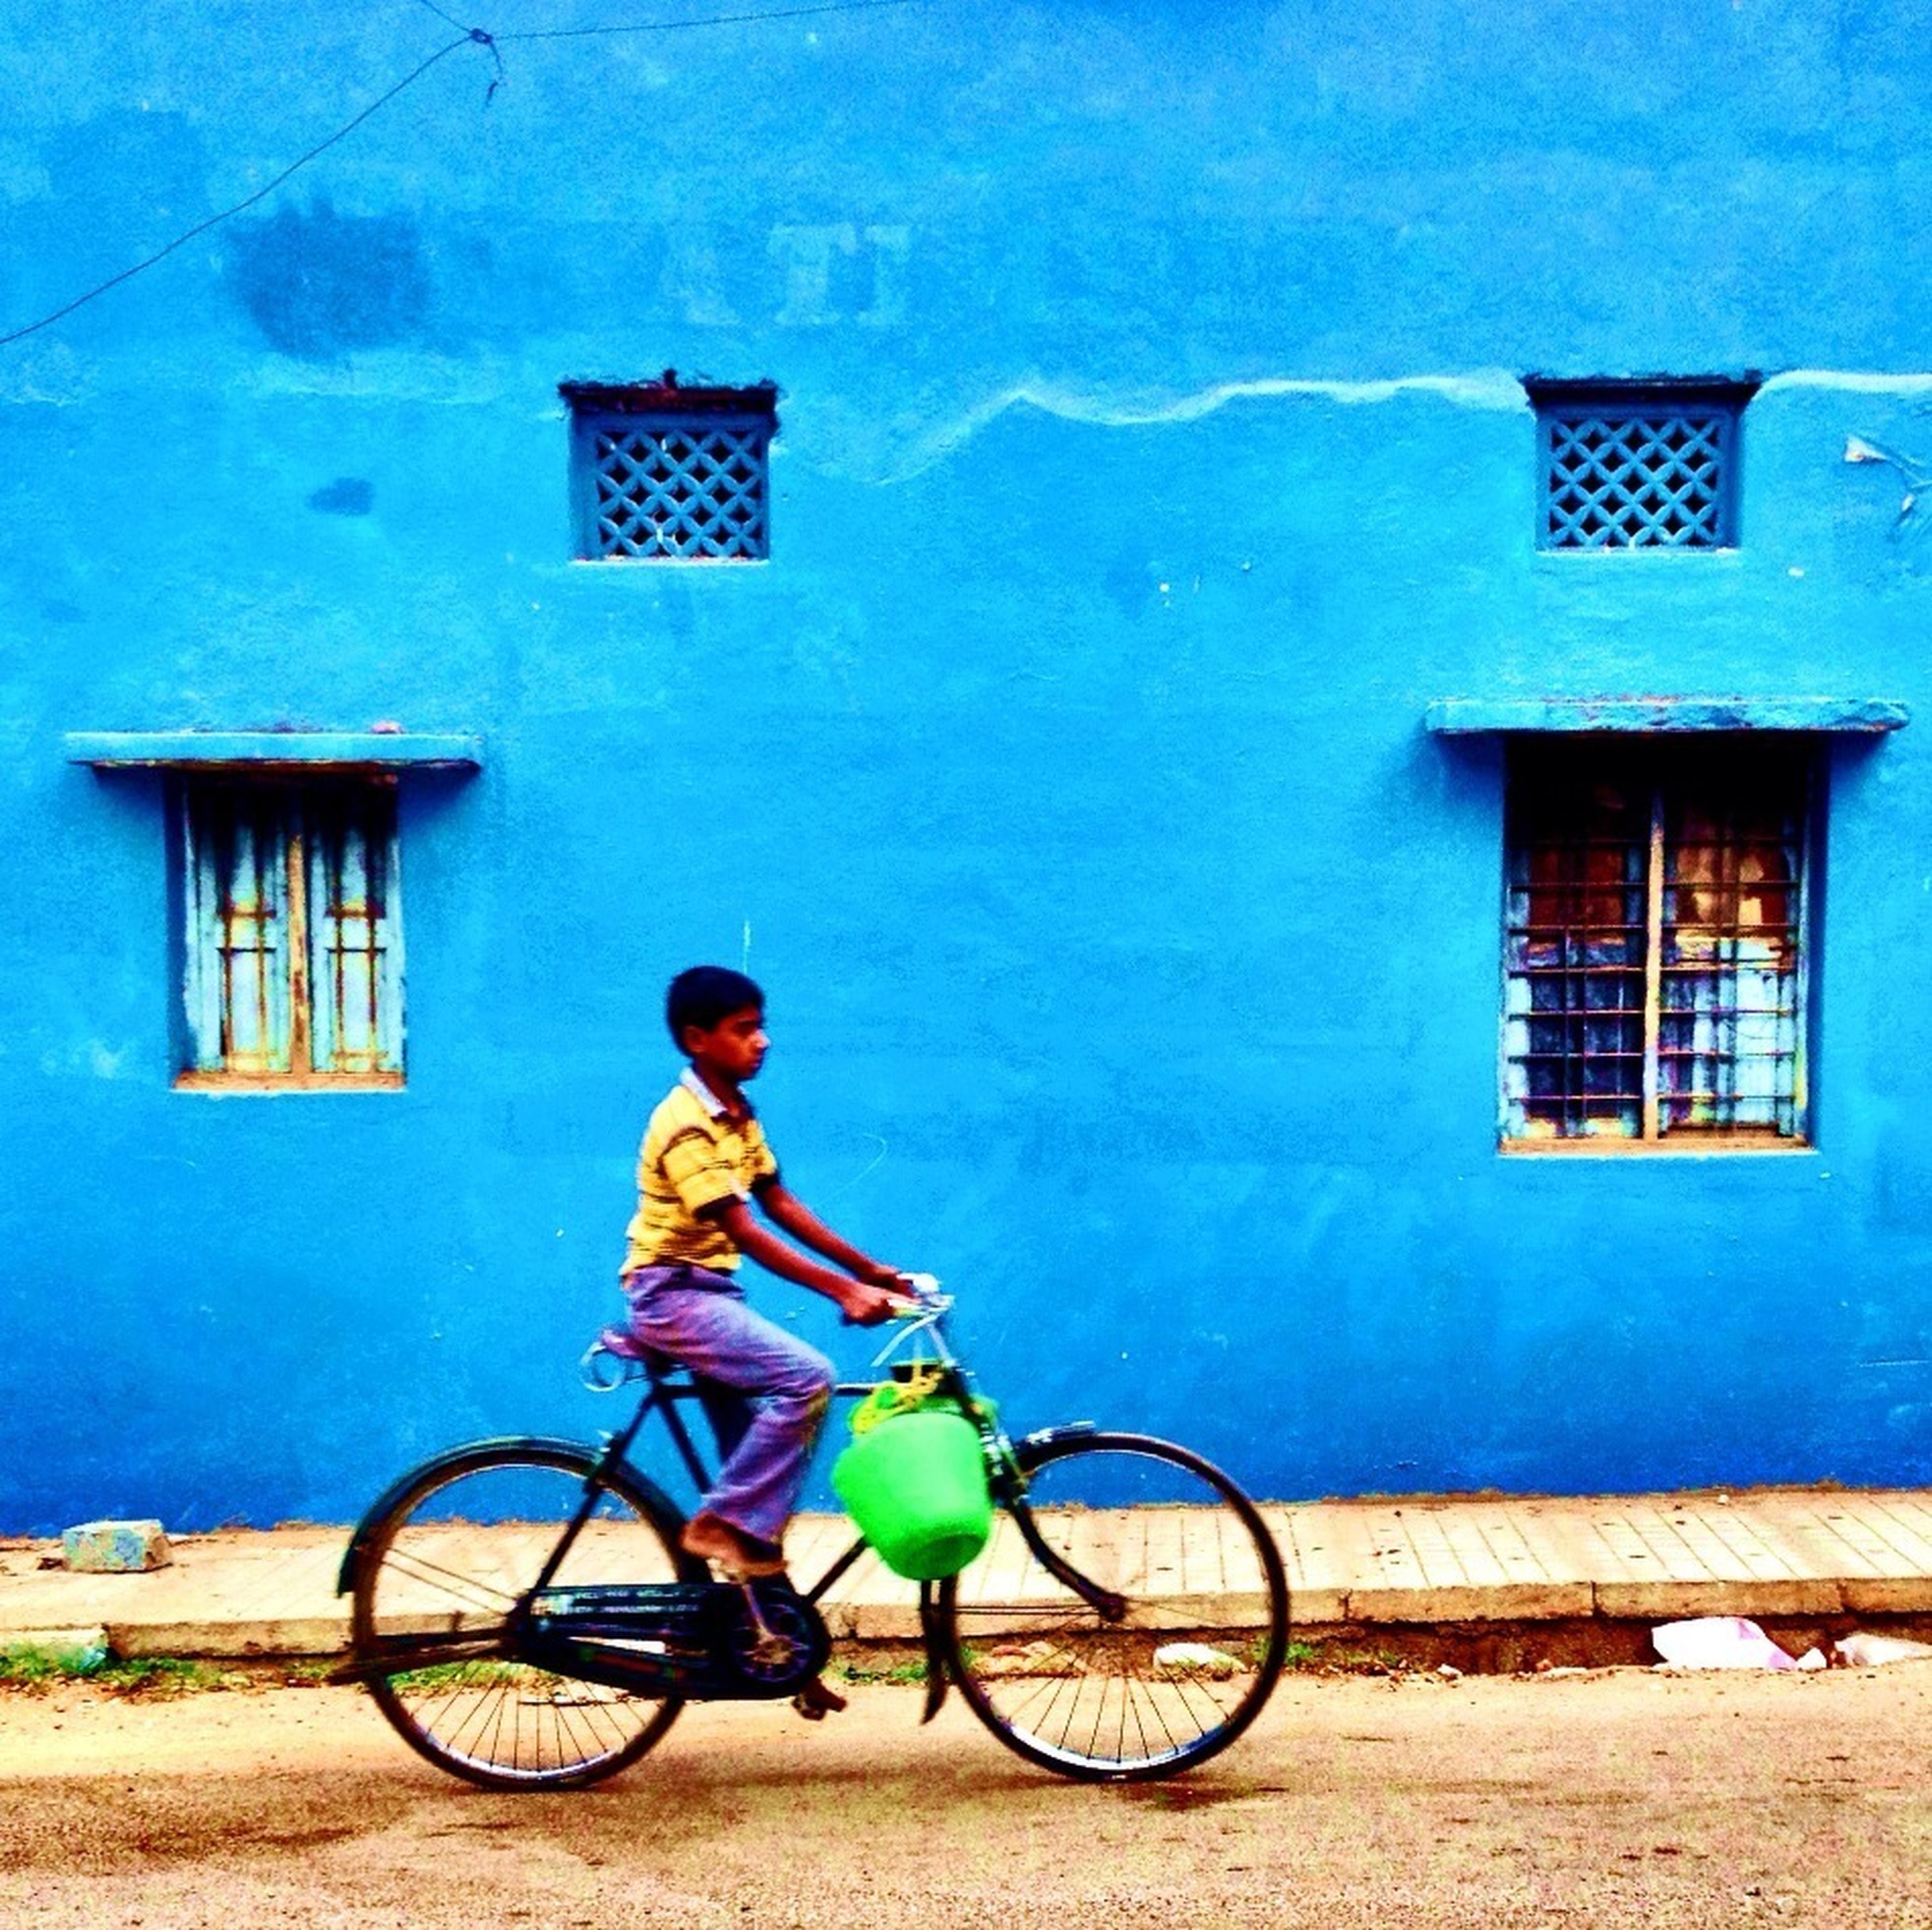 bicycle, mode of transport, transportation, land vehicle, building exterior, architecture, built structure, stationary, parked, parking, side view, blue, full length, leaning, wall - building feature, day, riding, lifestyles